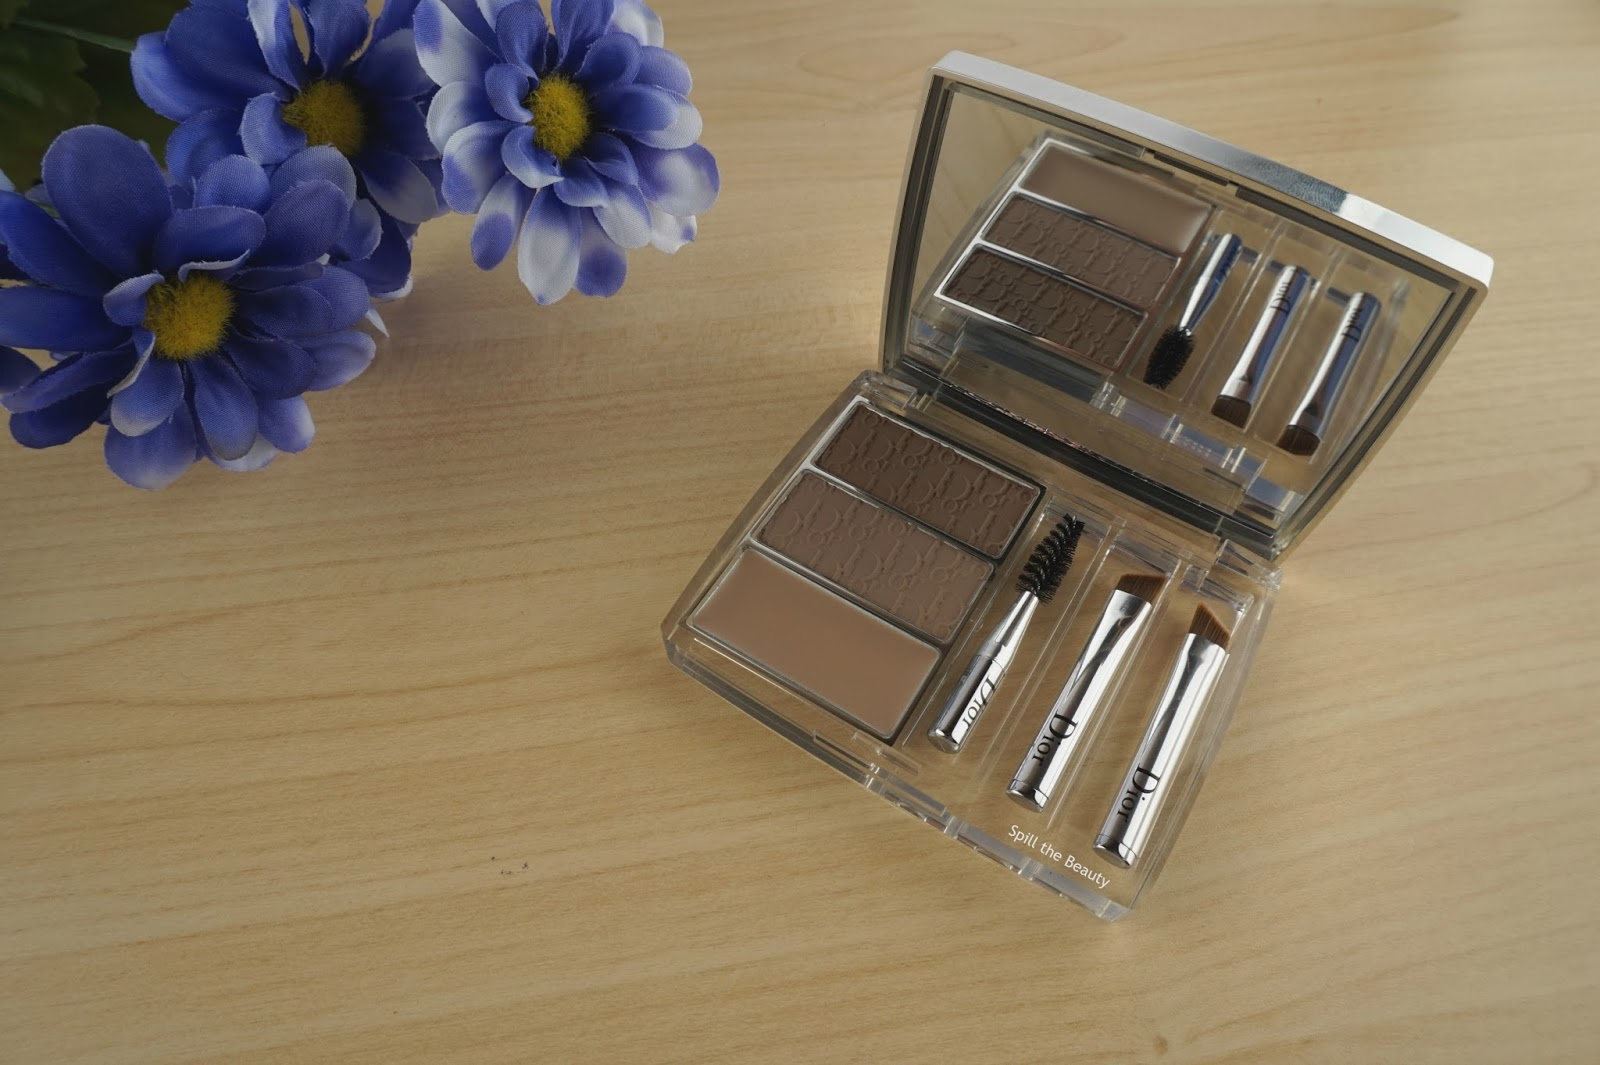 dior all in brow 3d review